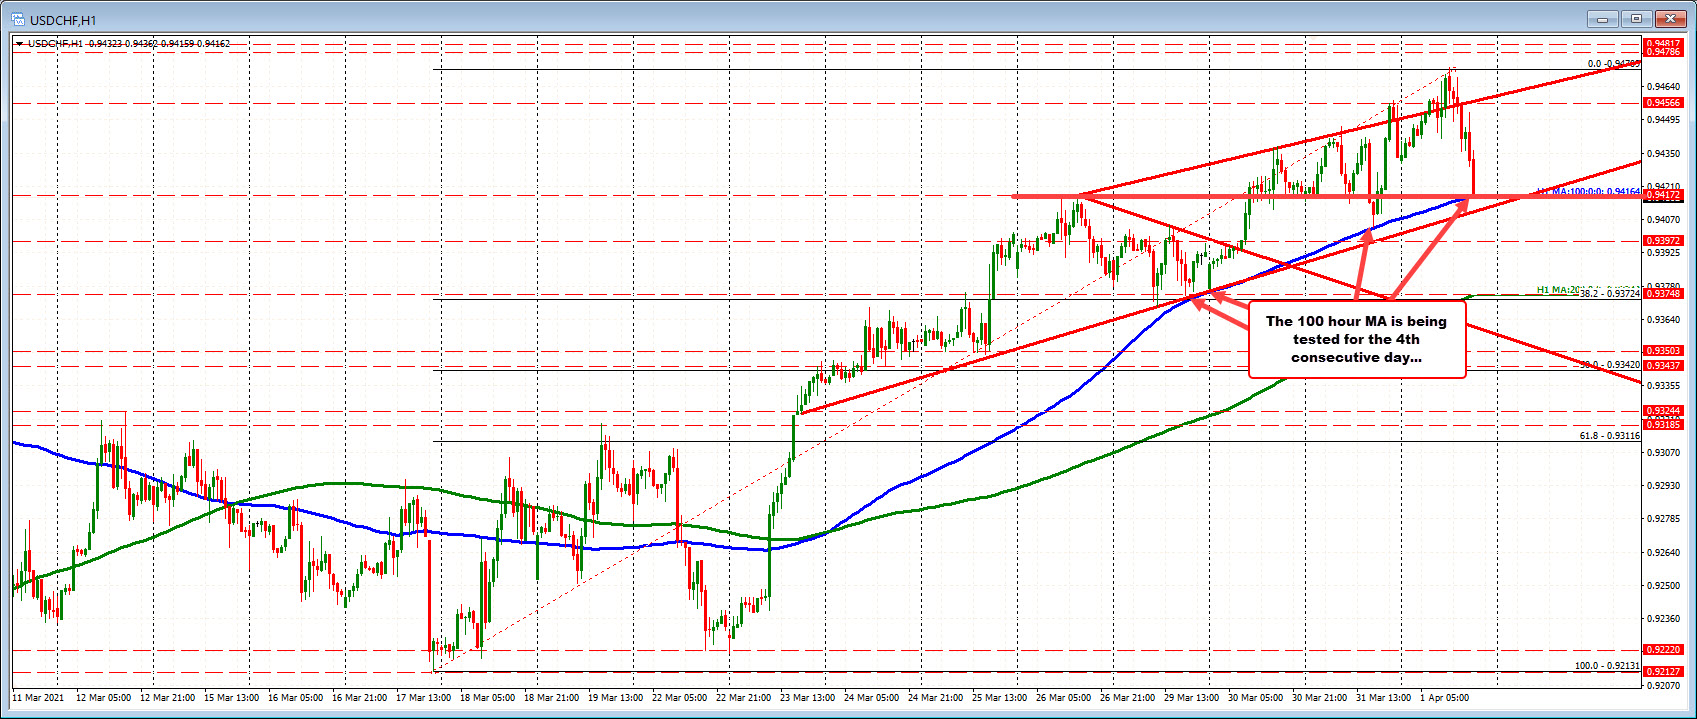 USDCHF on the hourly chart